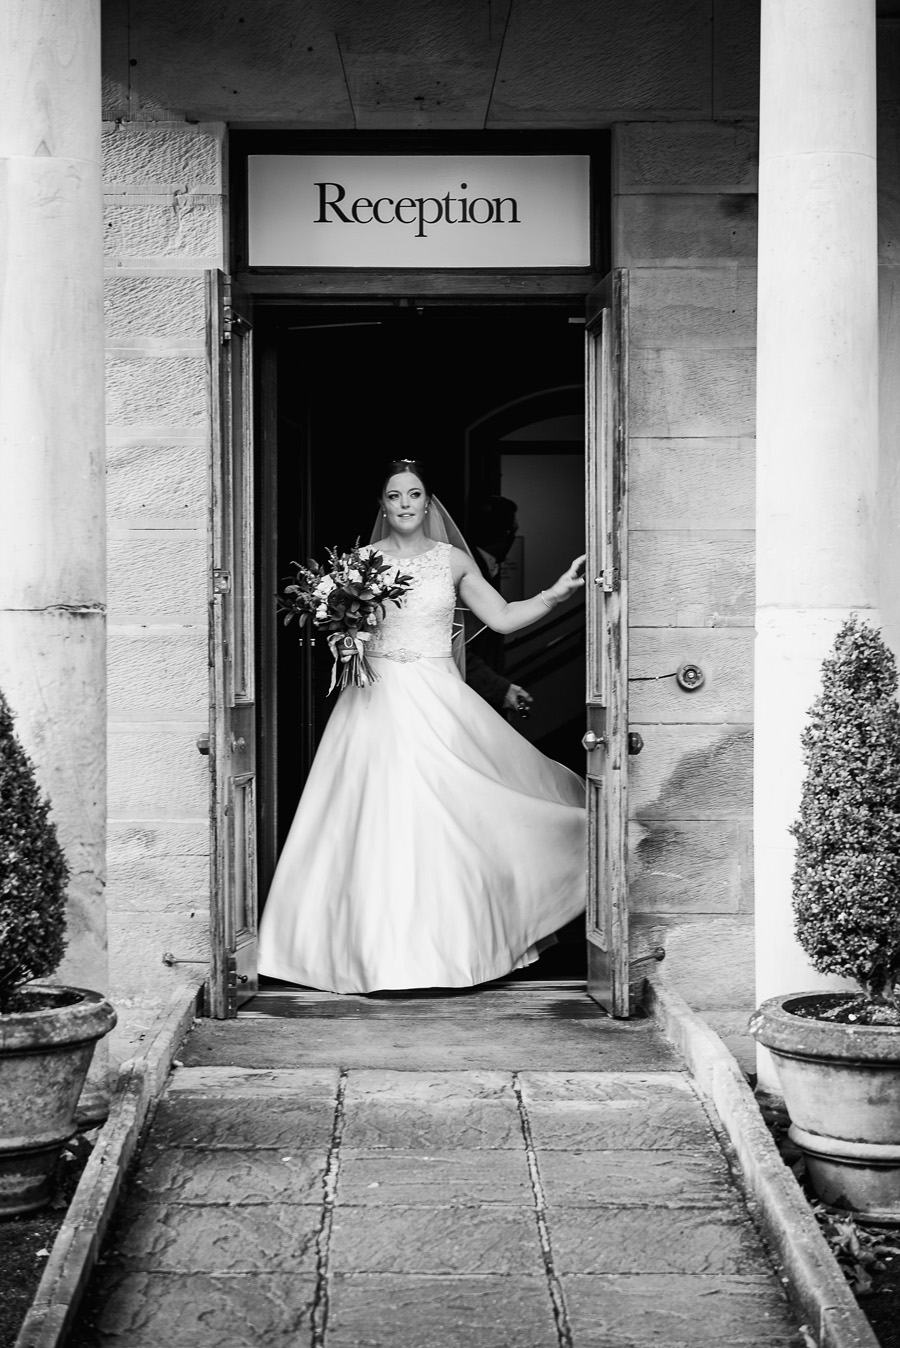 Stunning real wedding at Salomons Estate, images by Penny Young Photography (8)